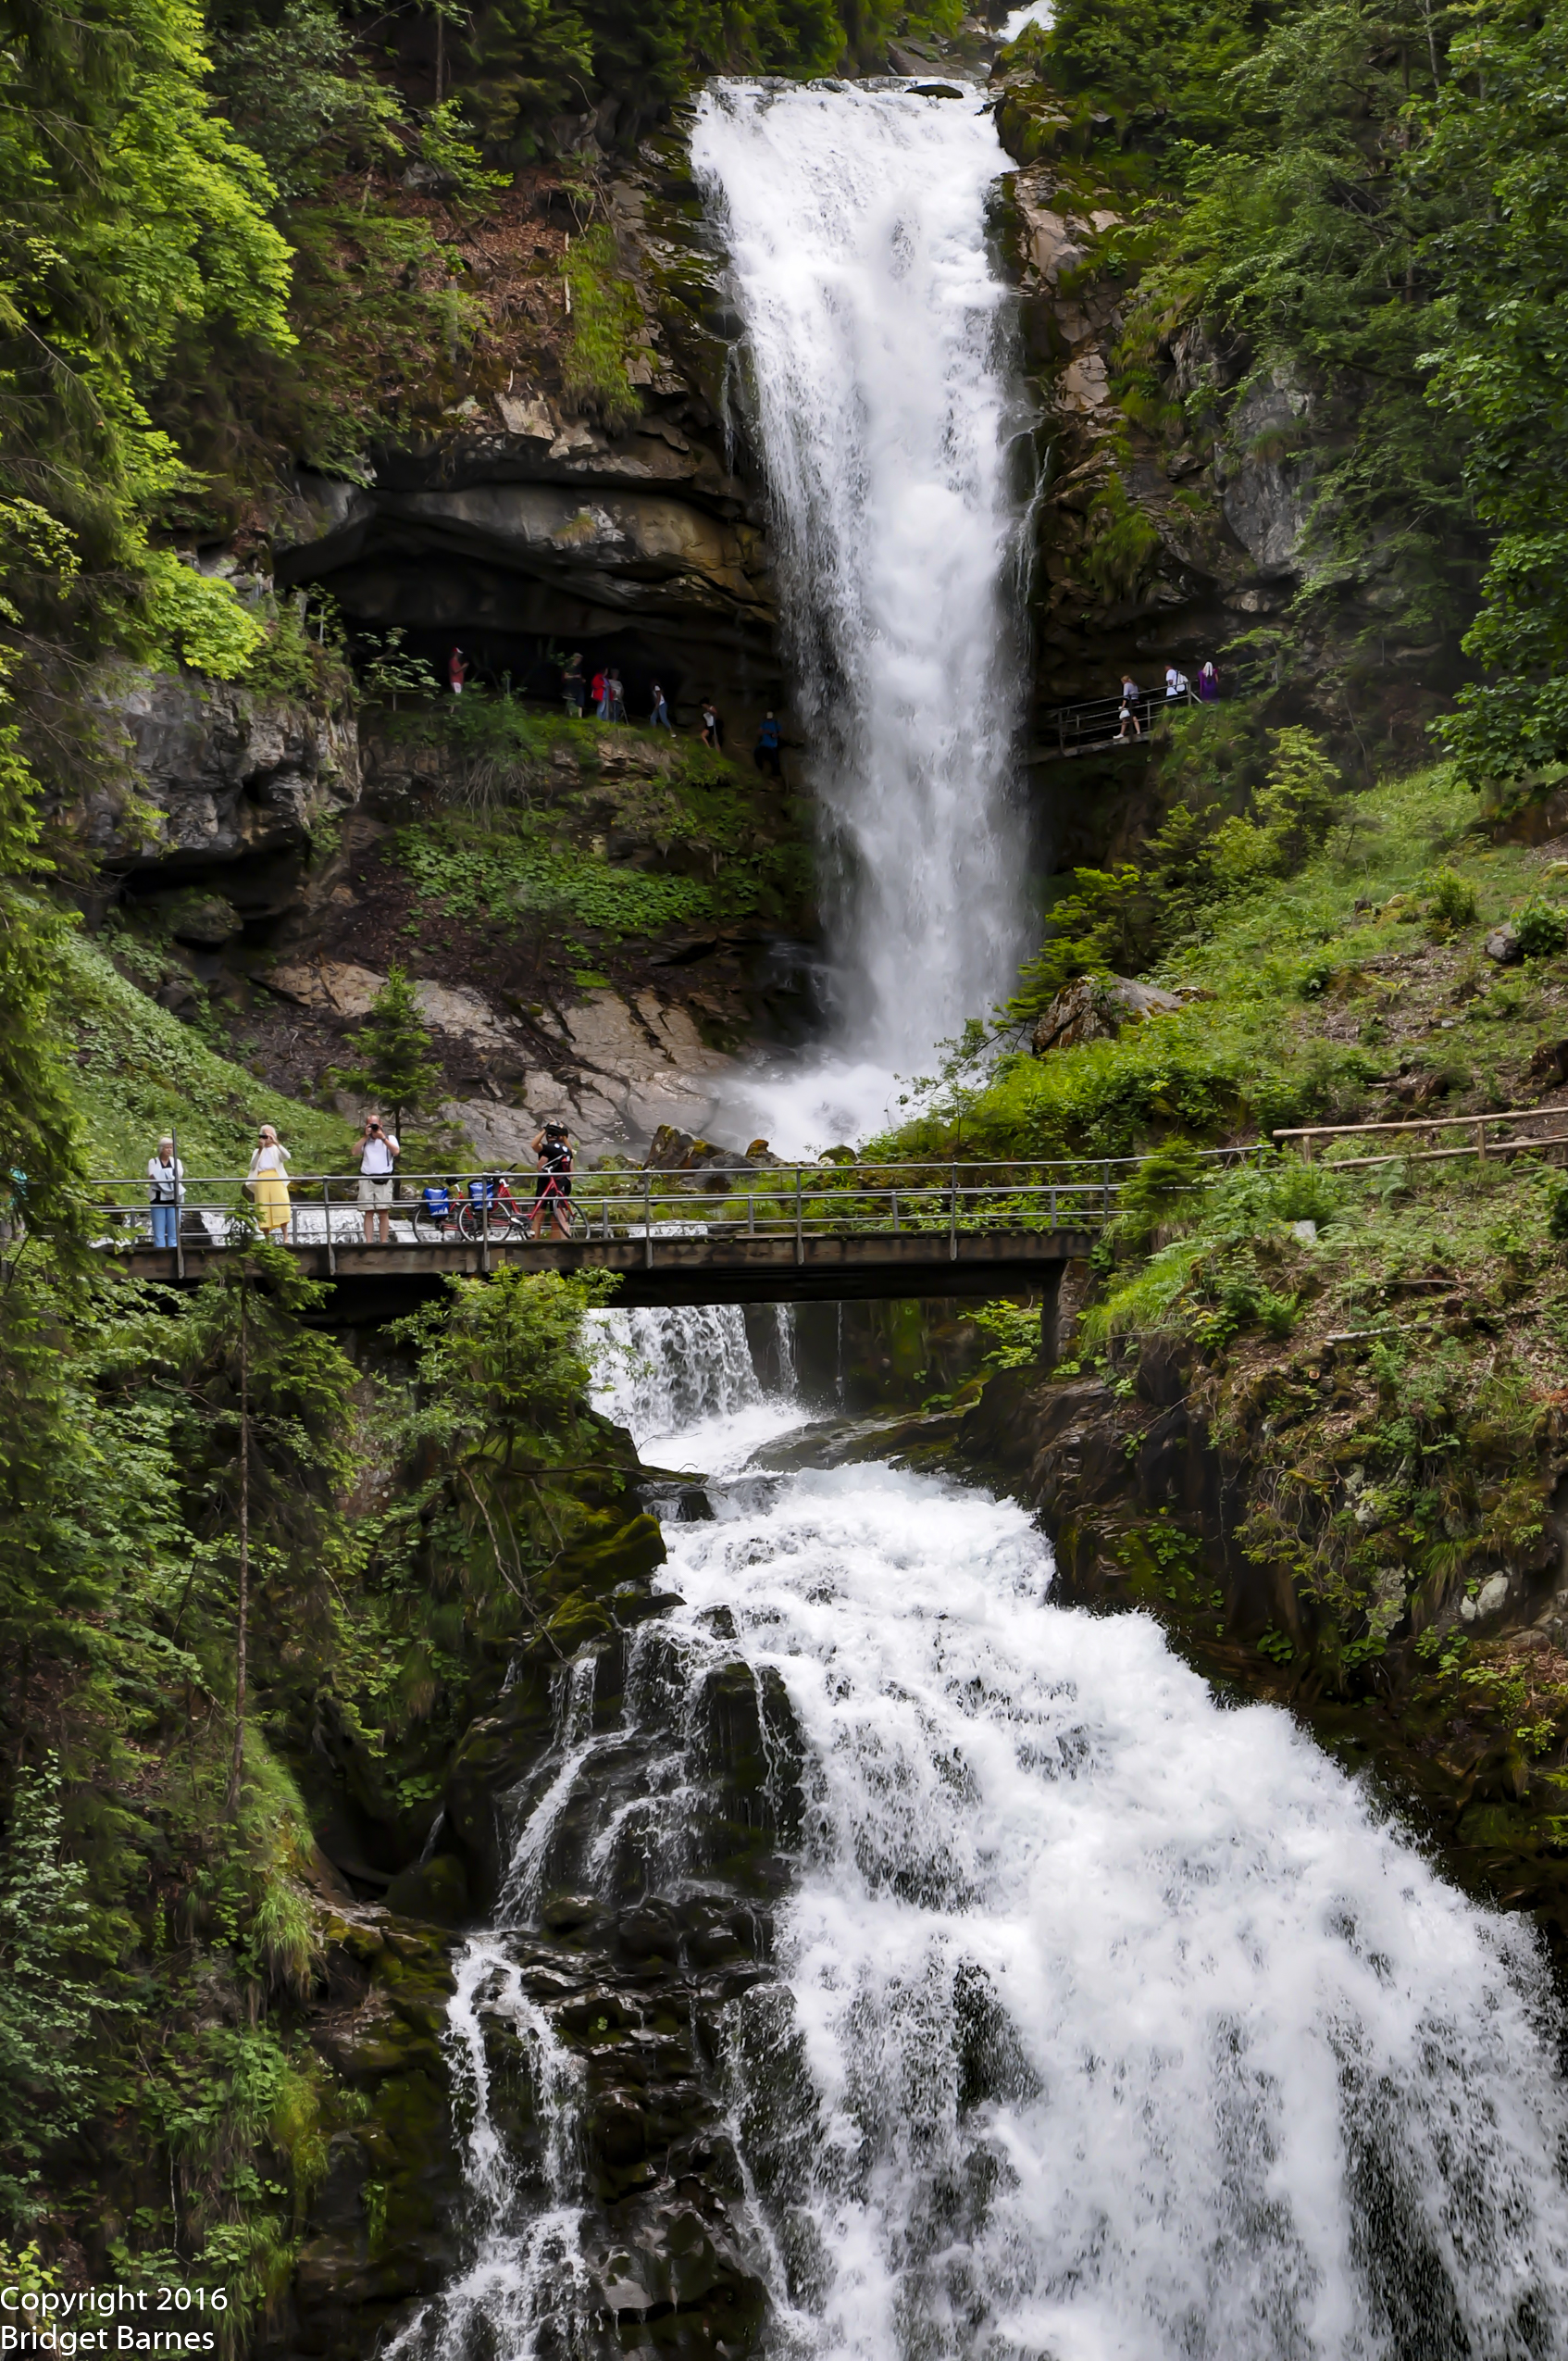 Visitors enjoying the expansive view of Giessbach Falls